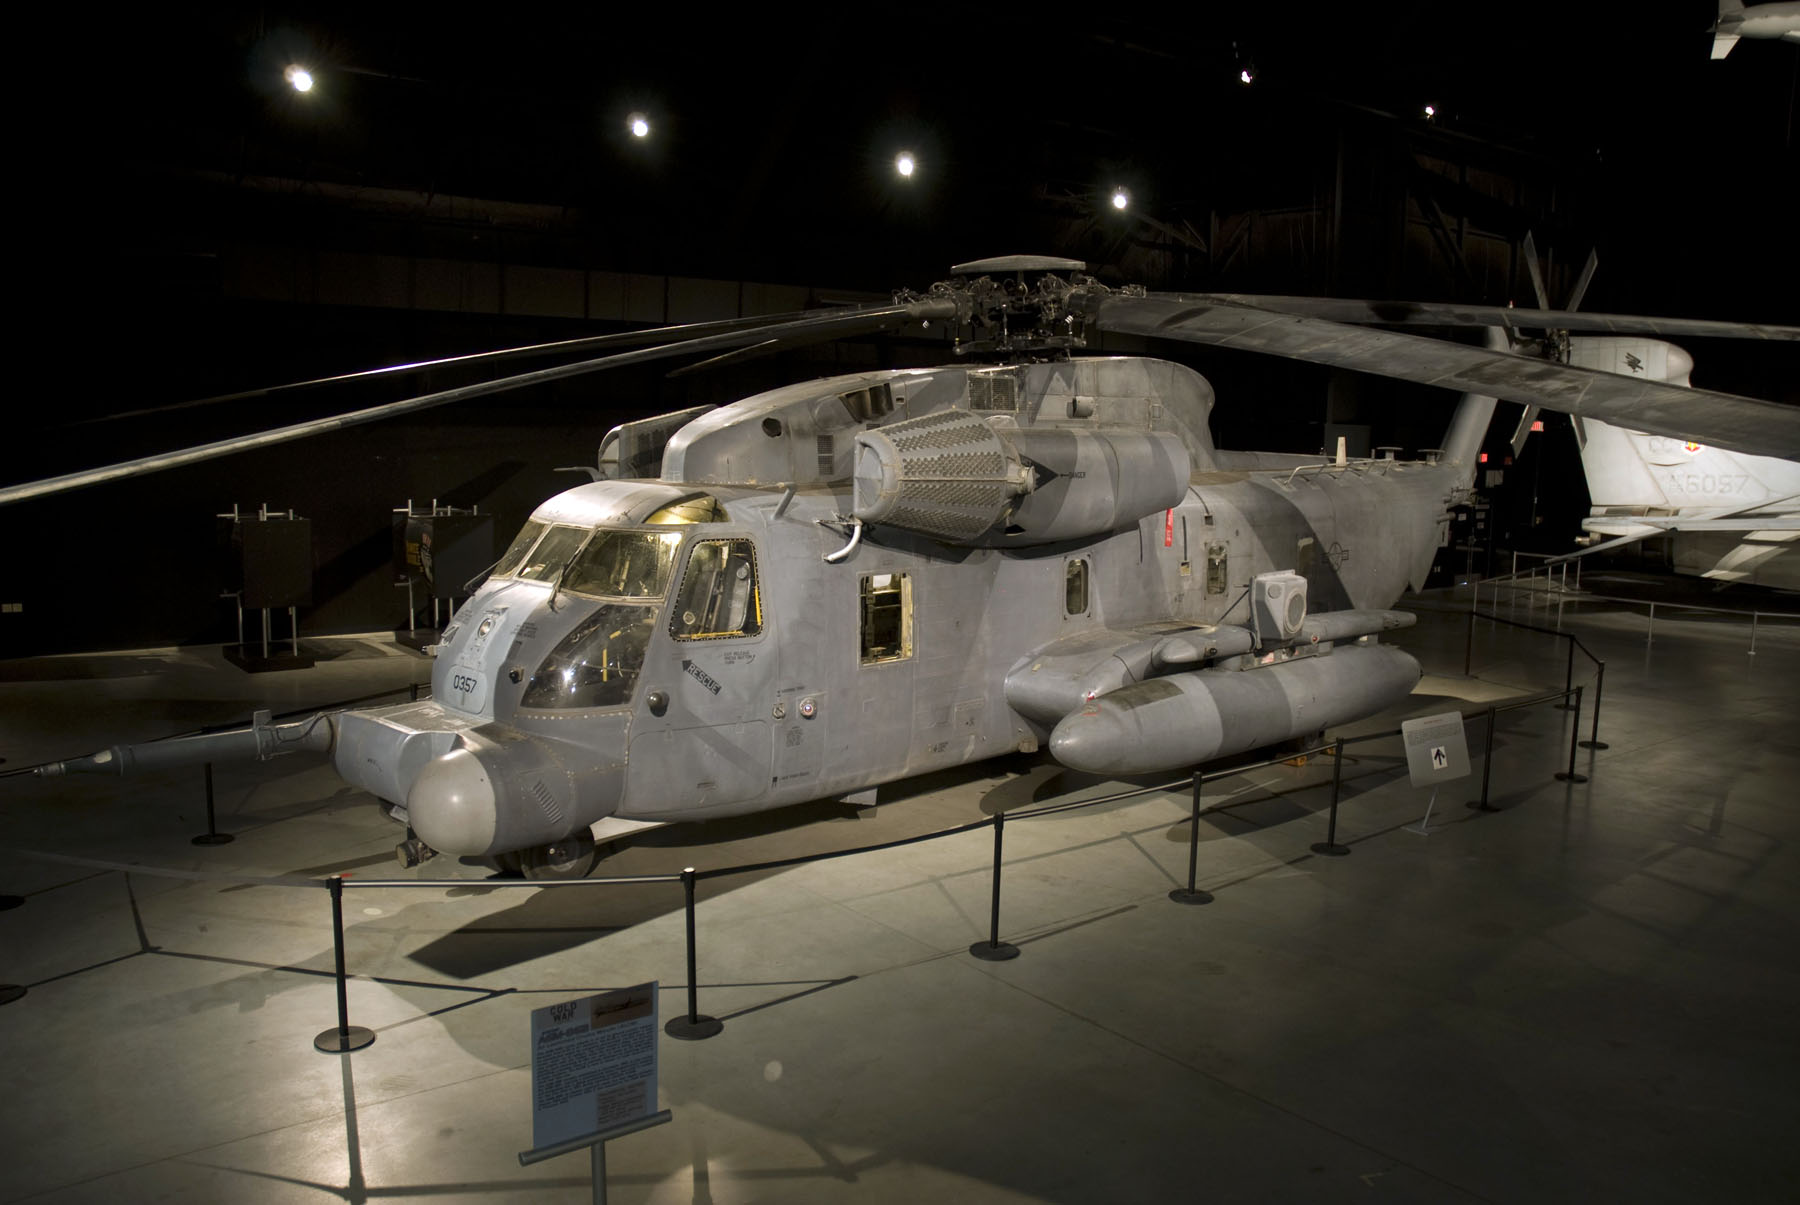 sikorsky mh 53m pave low iv national museum of the us air force display. Black Bedroom Furniture Sets. Home Design Ideas